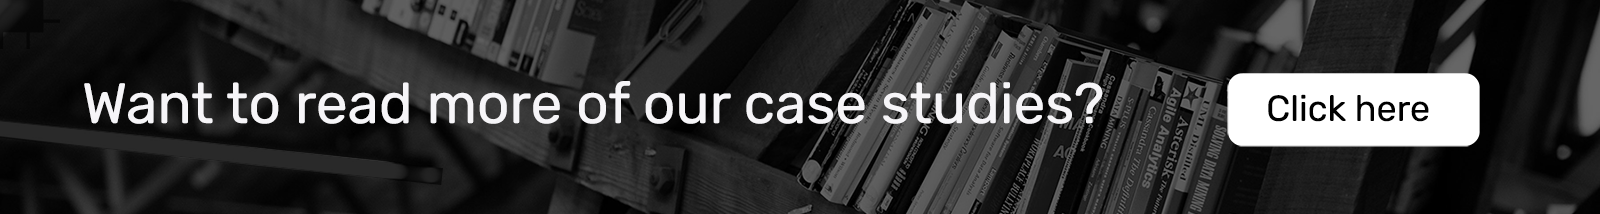 datamine case studies blog banner image